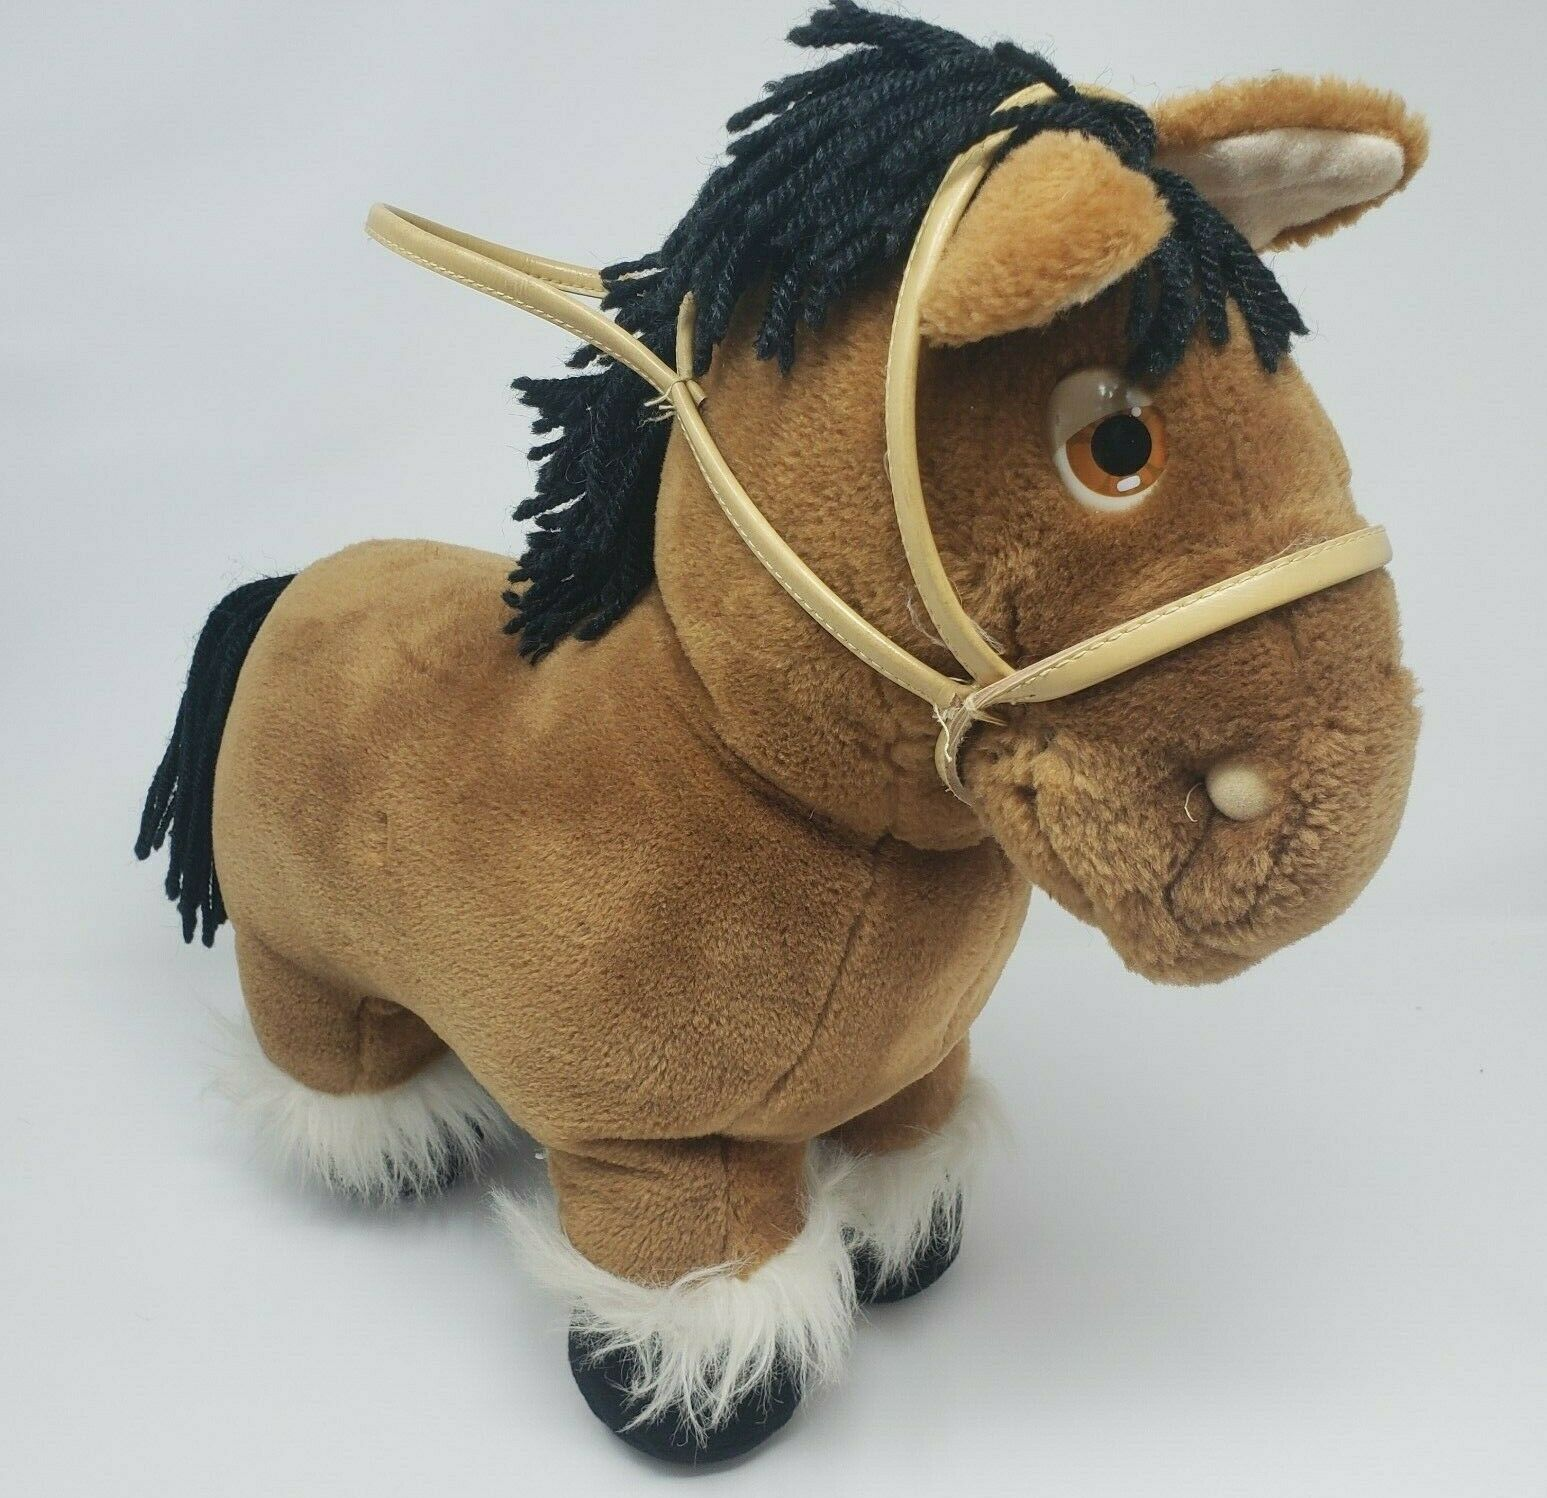 Primary image for VINTAGE 1984 CABBAGE PATCH KIDS HORSE PONY CPK COLECO STUFFED ANIMAL PLUSH BROWN